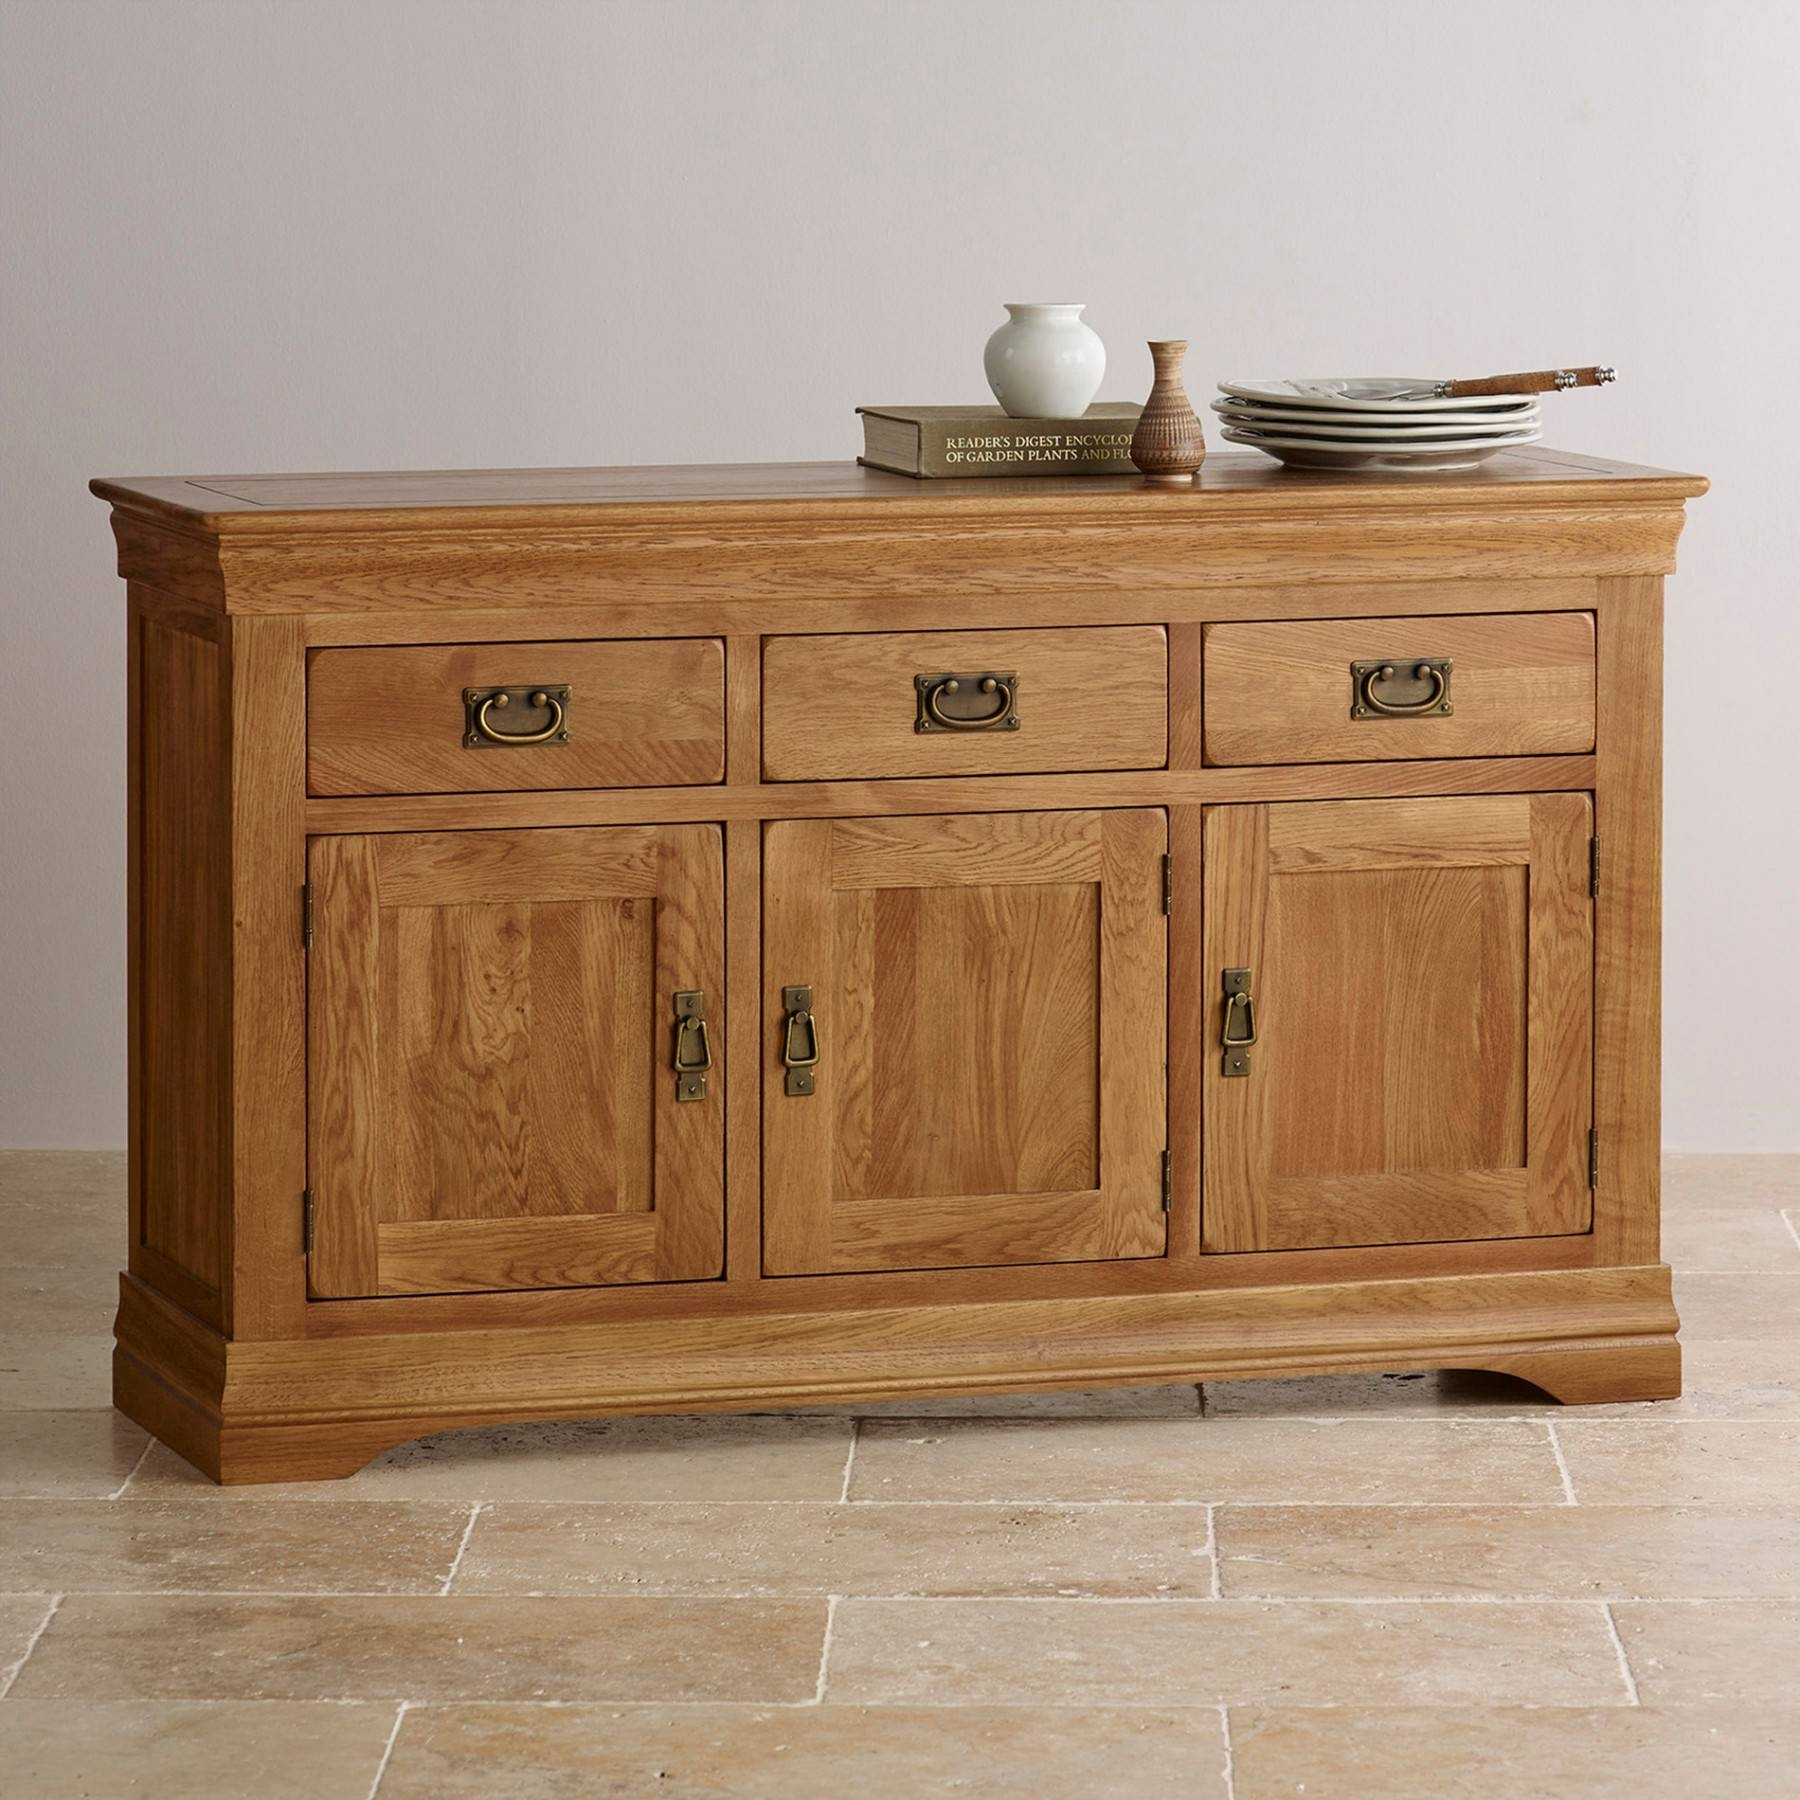 French Farmhouse Rustic Solid Oak Large Sideboard | Sideboards Intended For 2018 Rustic Oak Large Sideboards (#7 of 15)